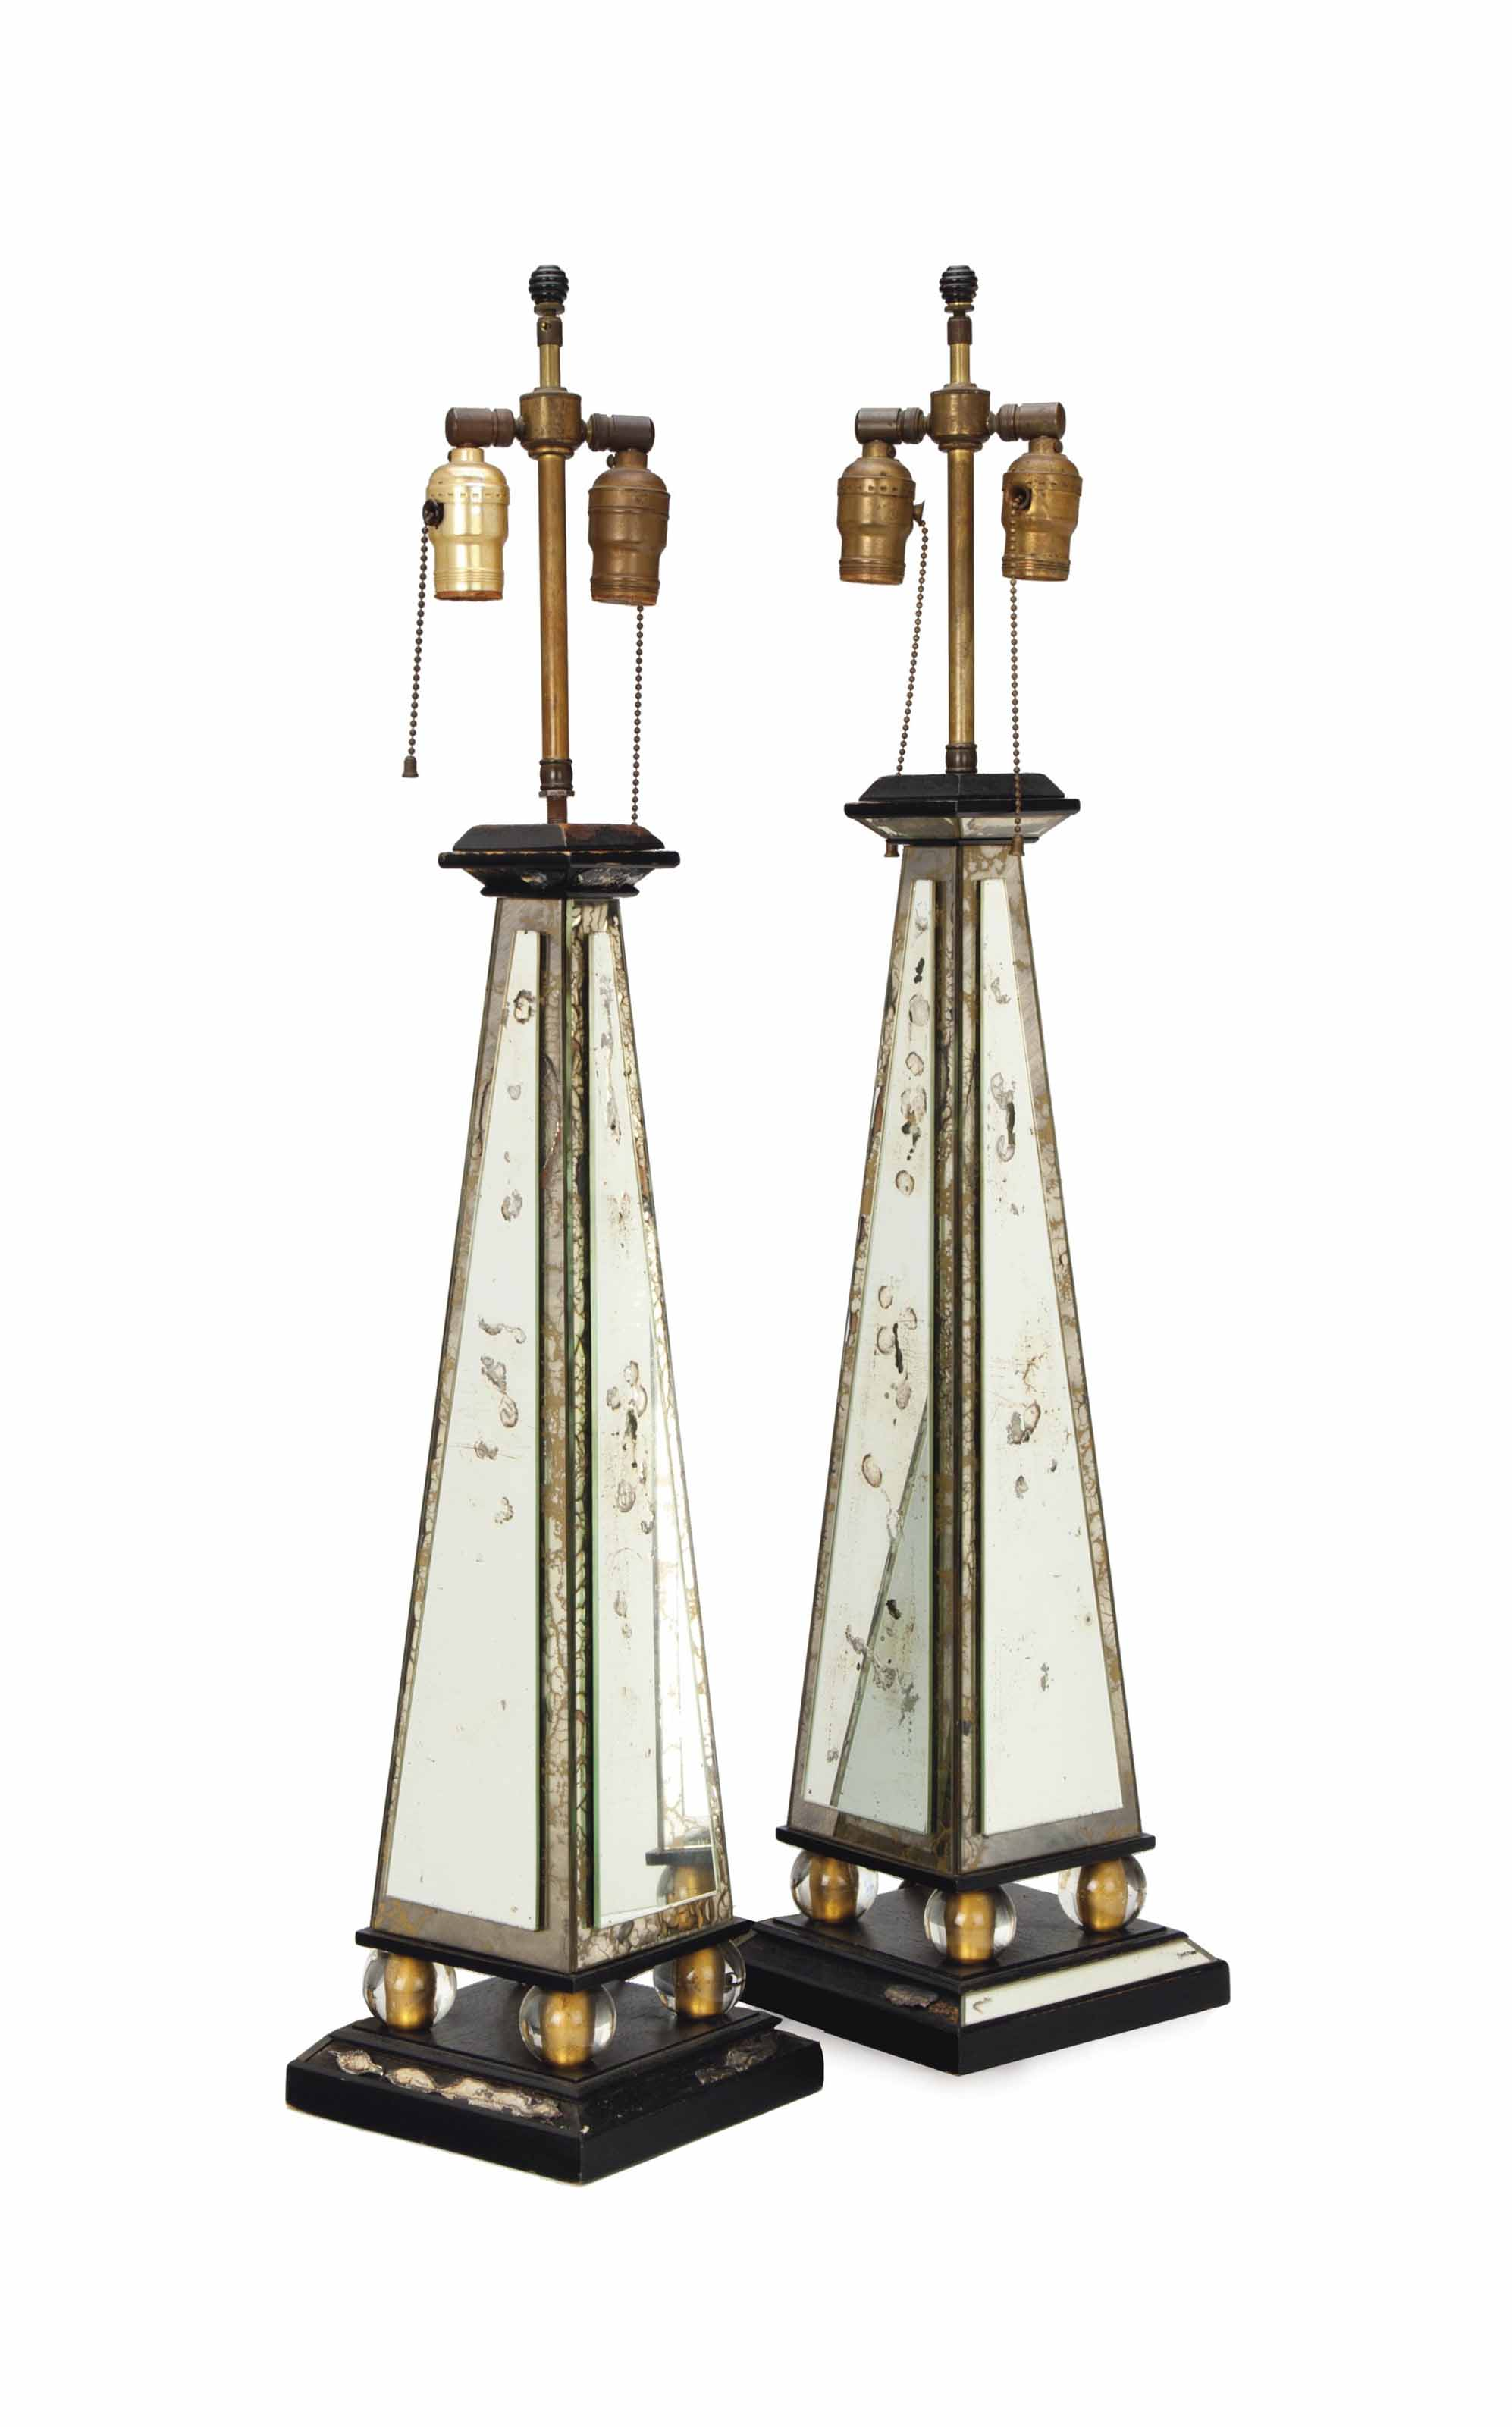 A PAIR OF MIRRORED-GLASS OBELISK-FORM TABLE LAMPS,